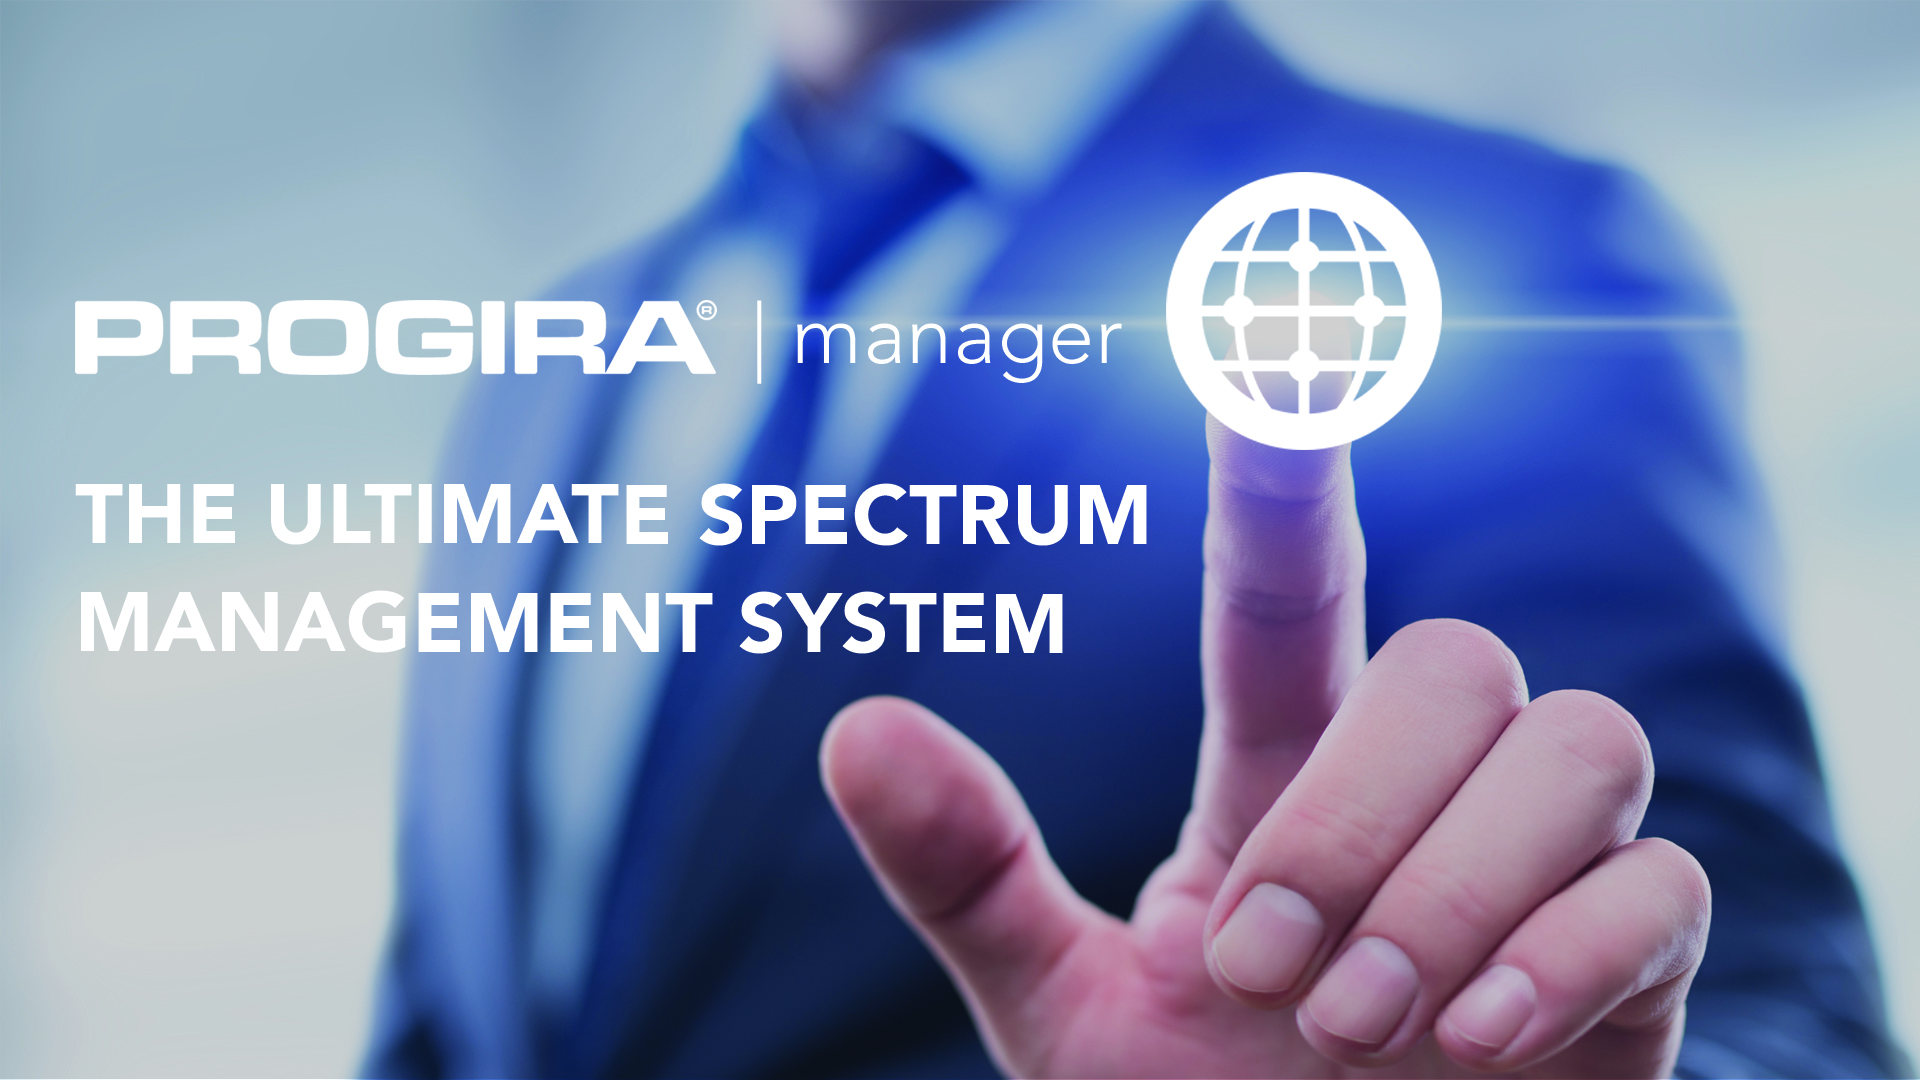 PROGIRA manager - Ultimate Spectrum Management System